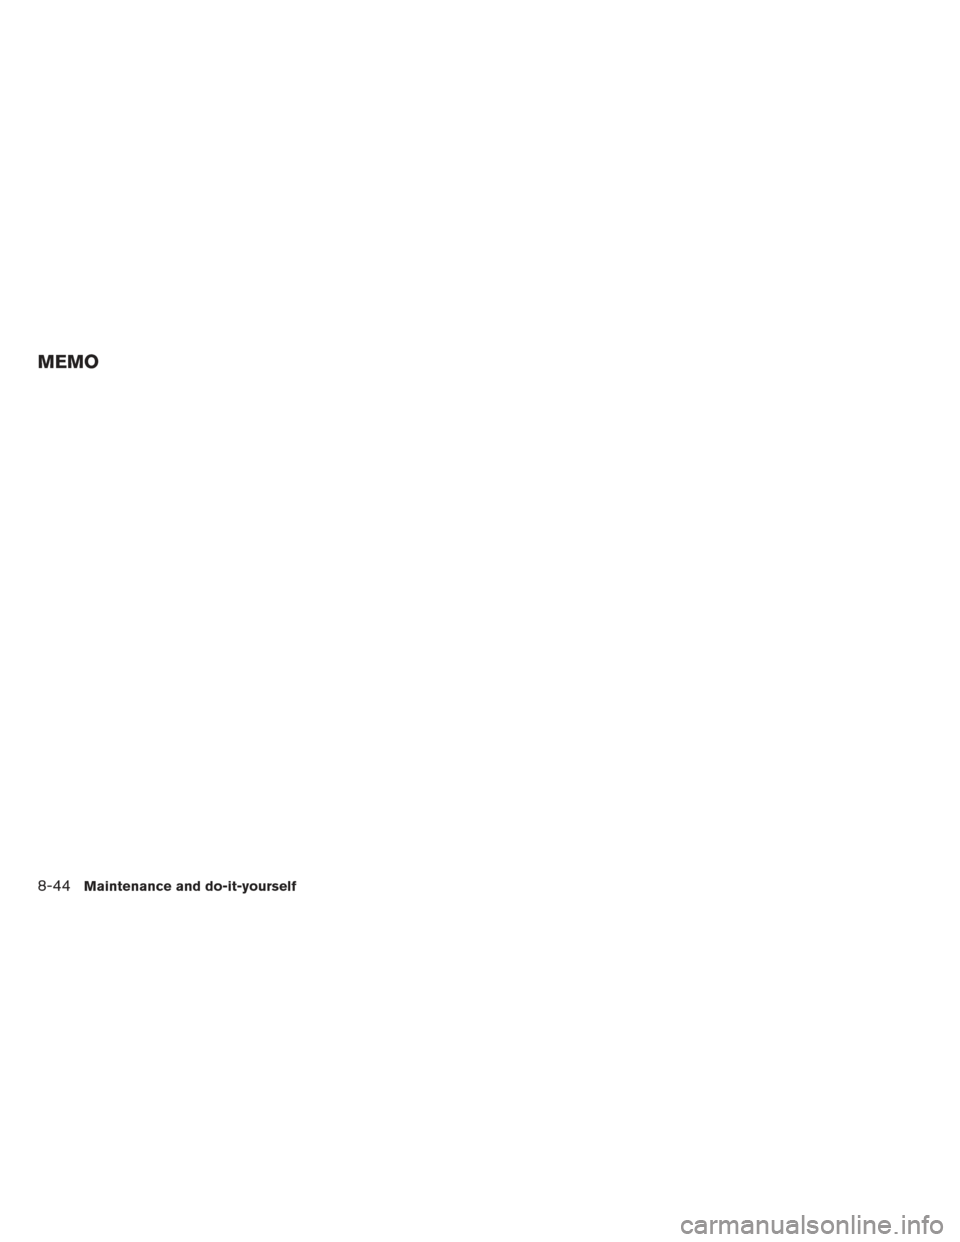 NISSAN FRONTIER 2013 D40 / 2.G Owners Manual MEMO 8-44Maintenance and do-it-yourself